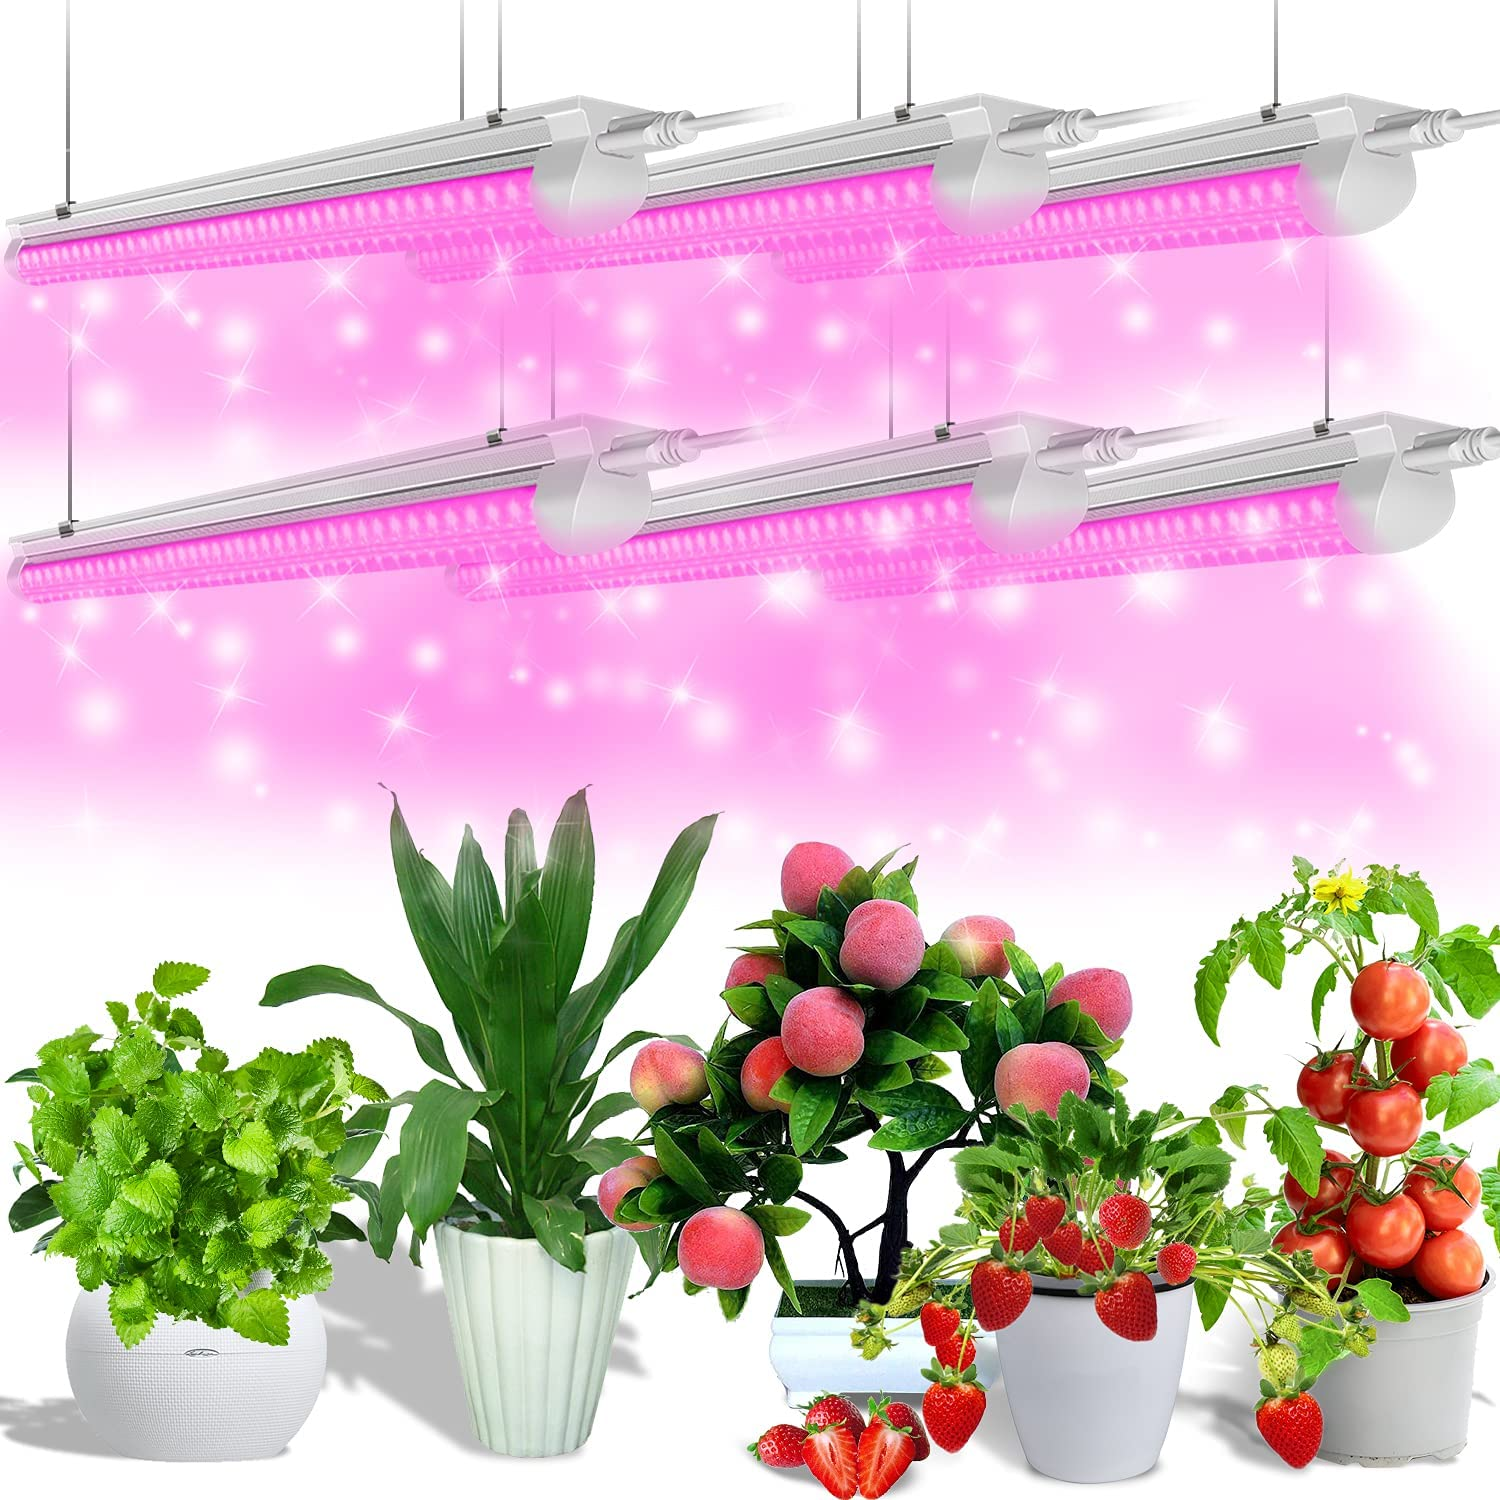 excellence JESLED LED Grow Lights 990W 6 x Plant 30W T8 Output 3ft L High 25% OFF